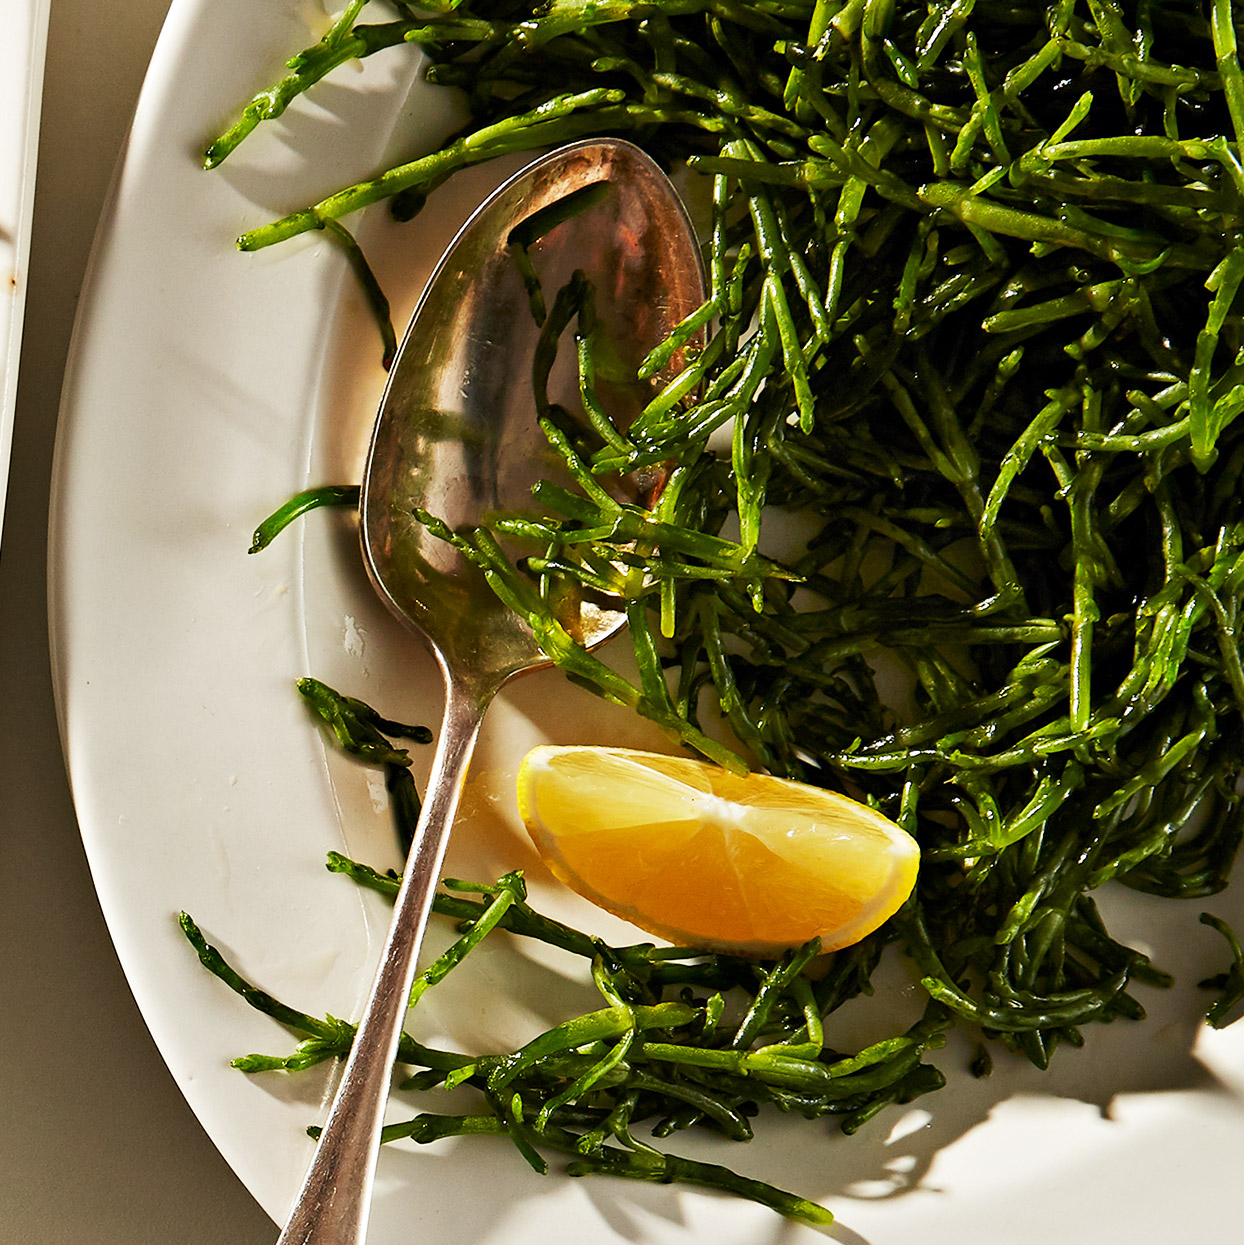 Lemony Samphire Trusted Brands